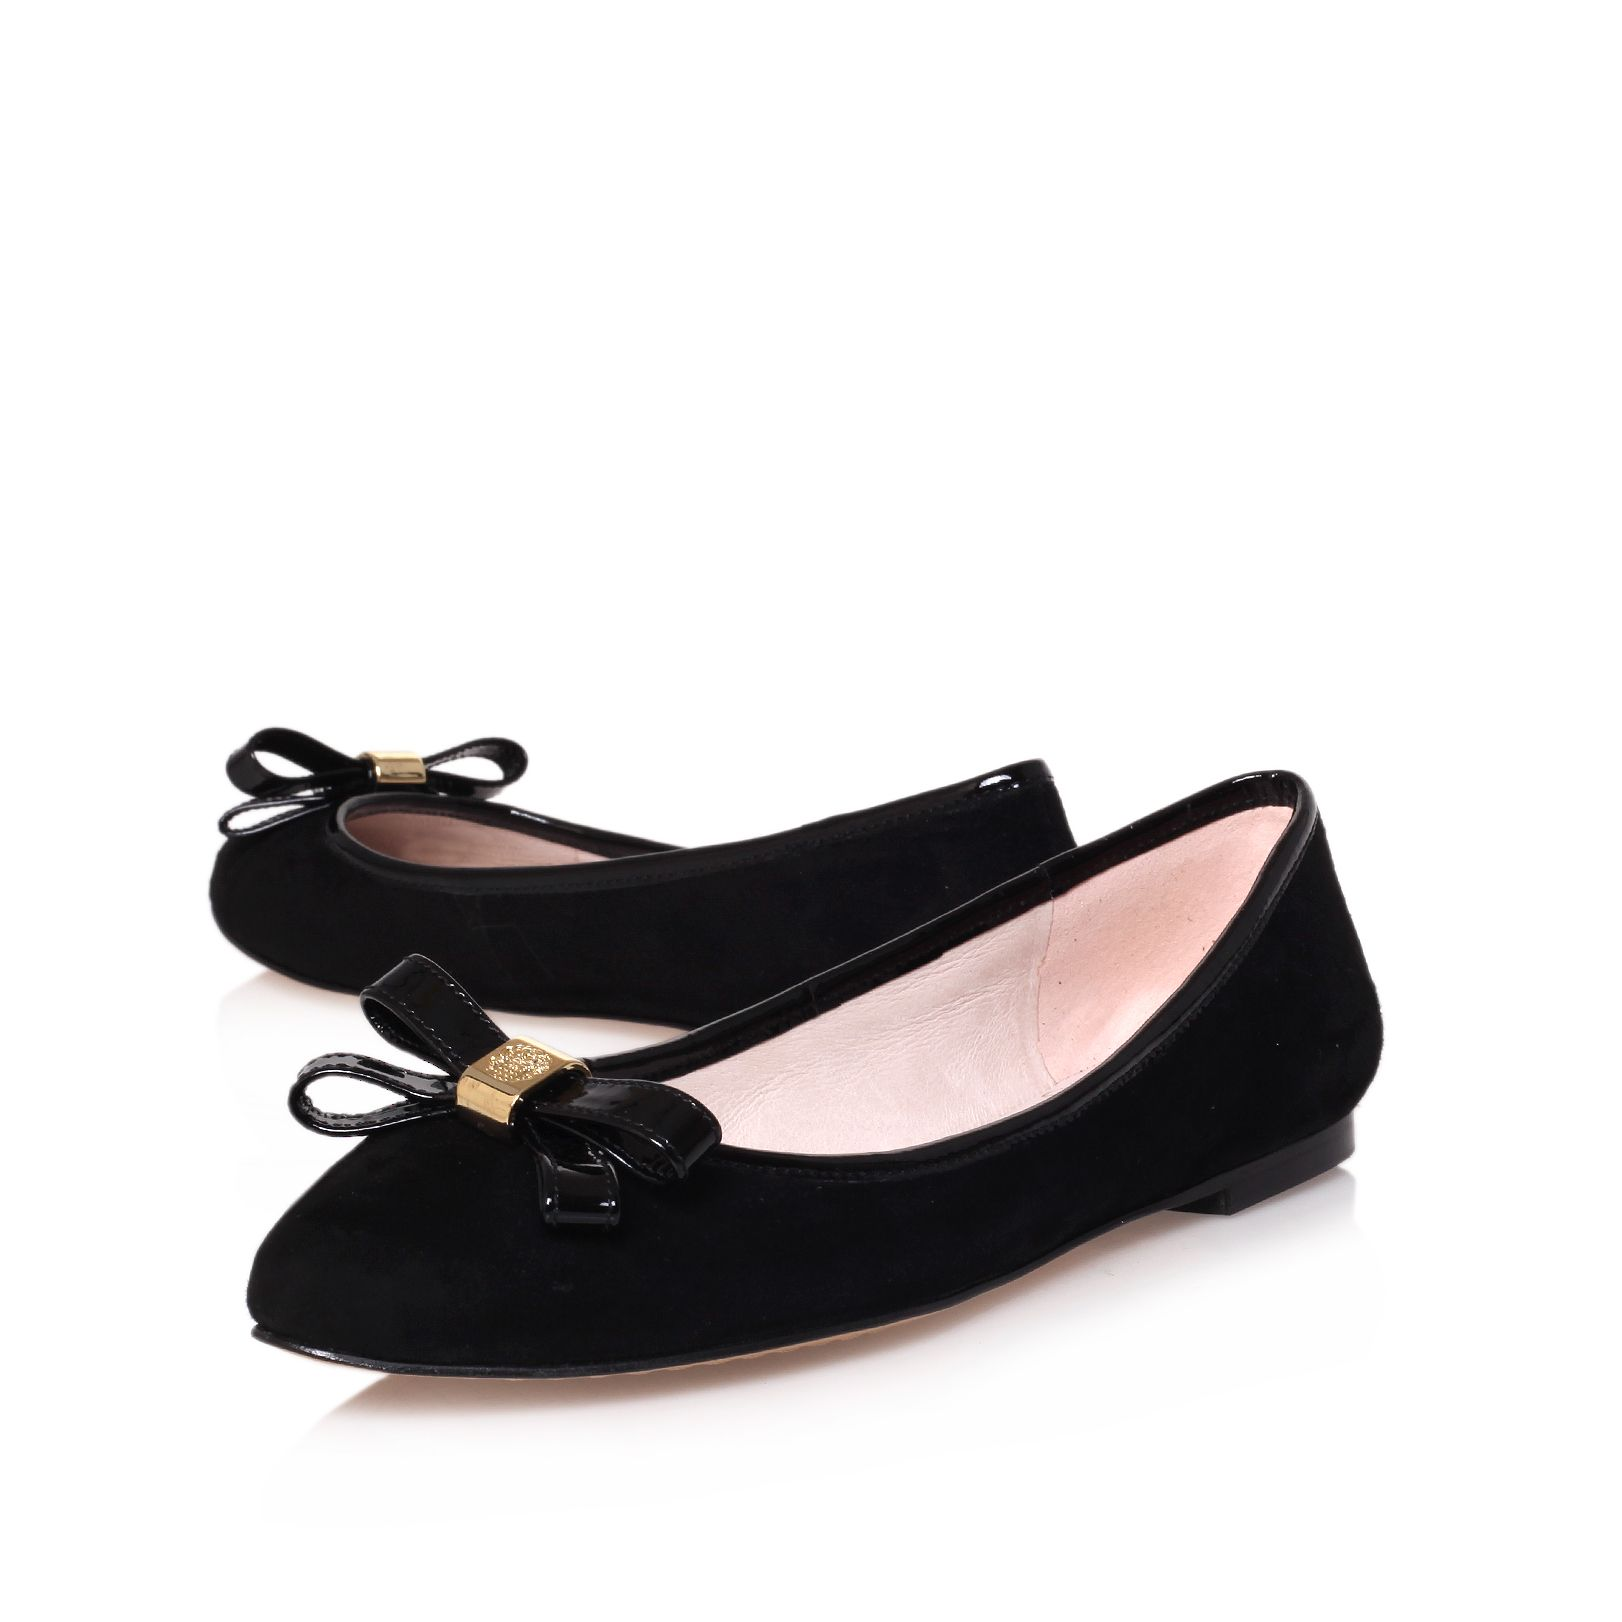 Timba ballerina shoes